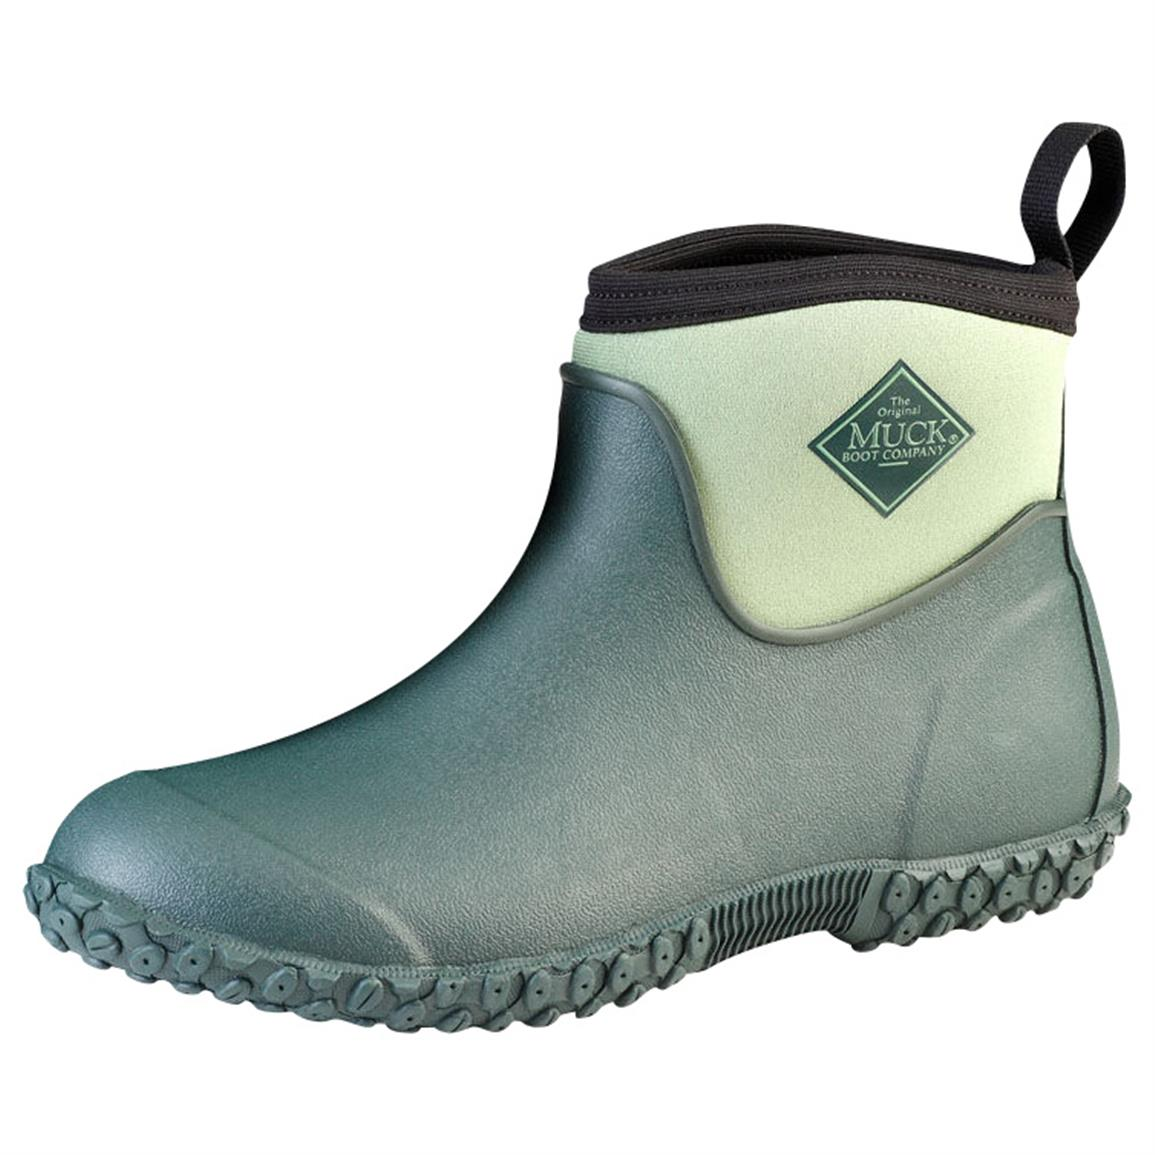 The Original Muck Boot Company Women's Muckster II Boots, Waterproof, Ankle, Green